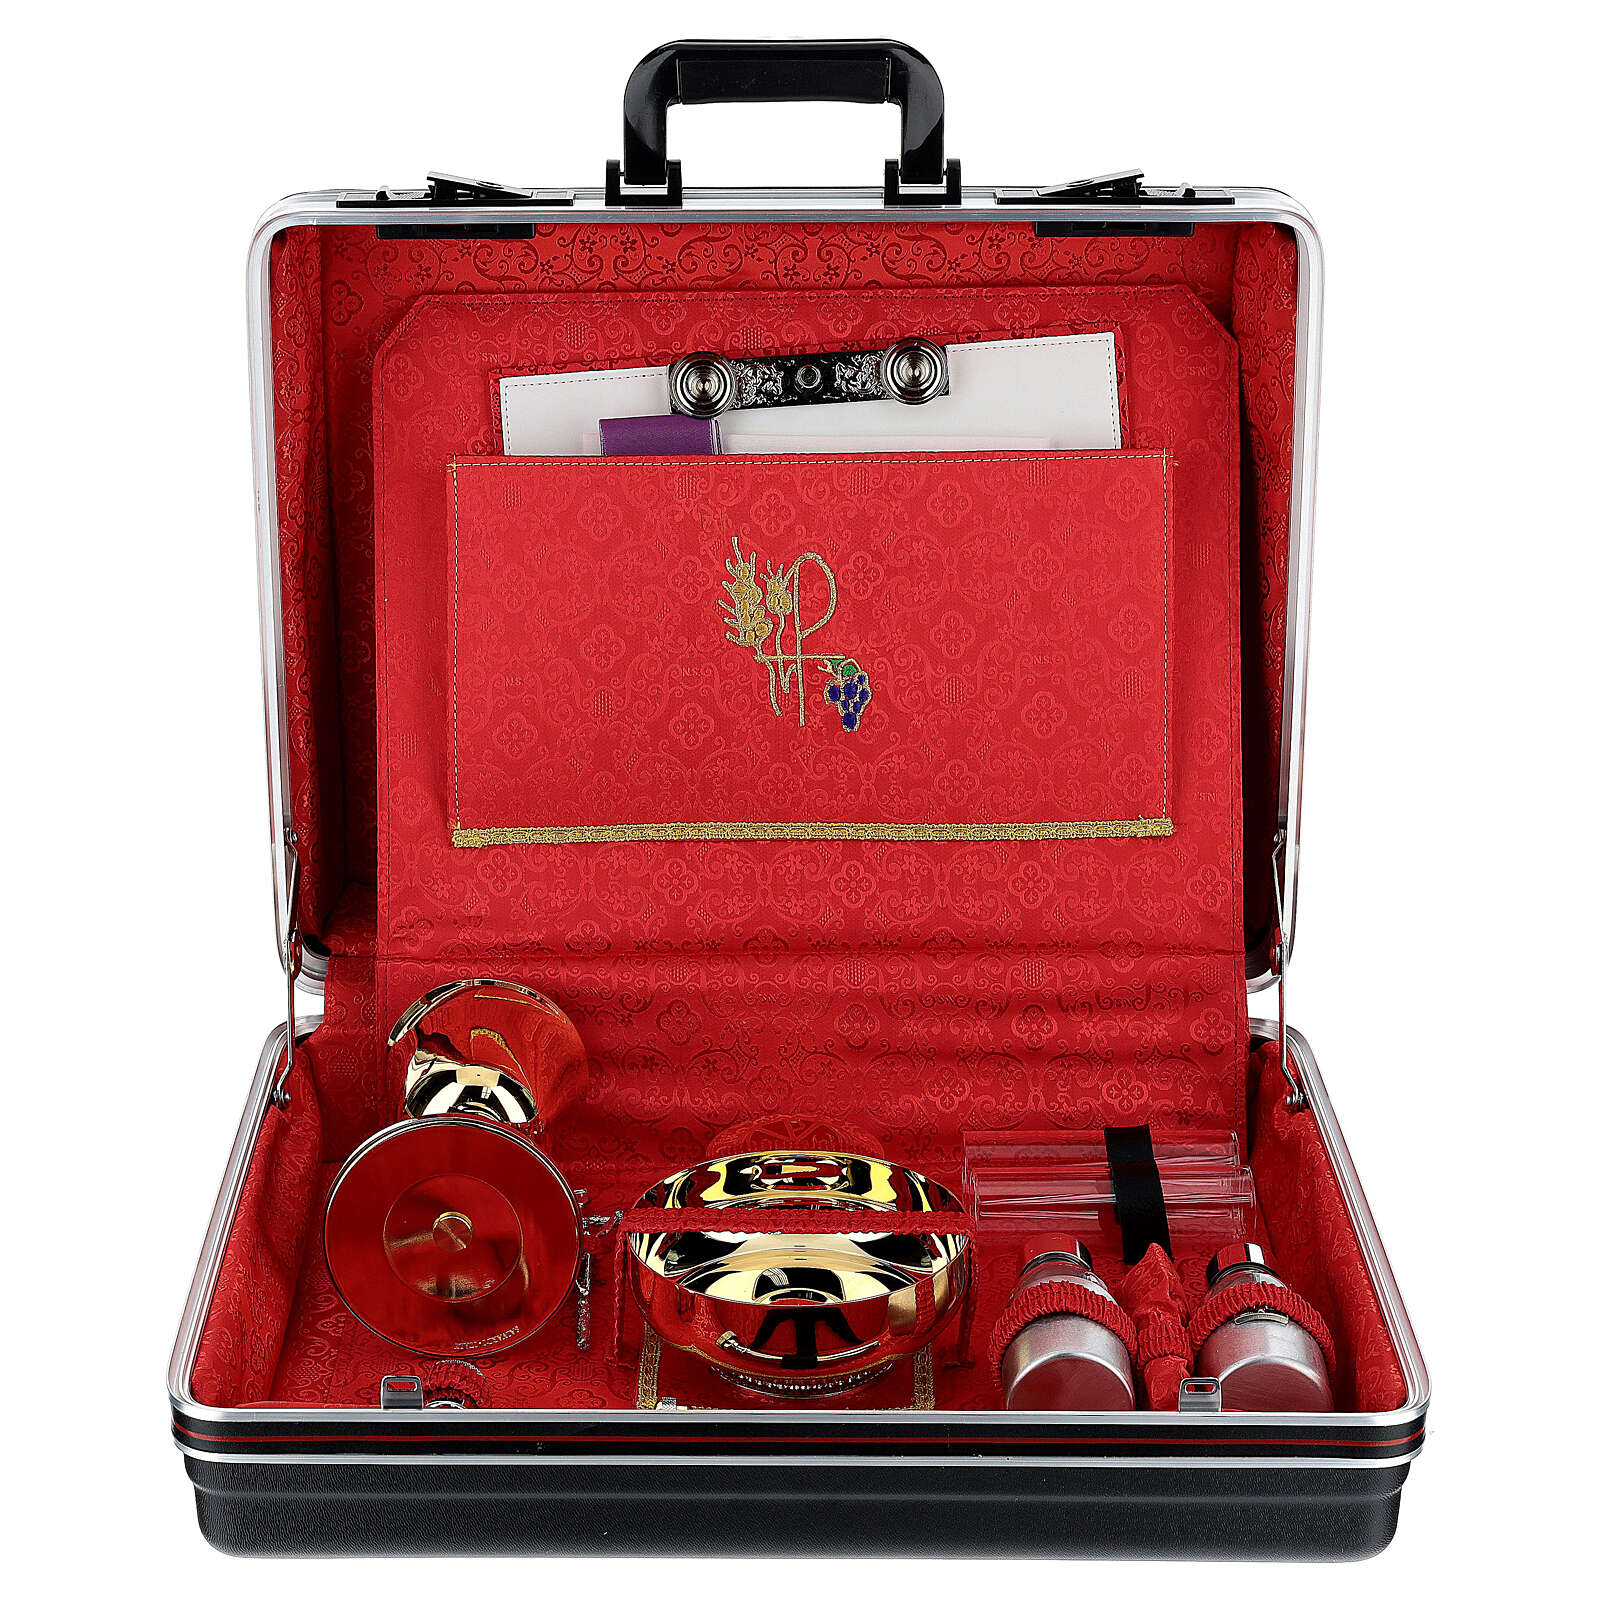 ABS briefcase with silk and embroidery 3